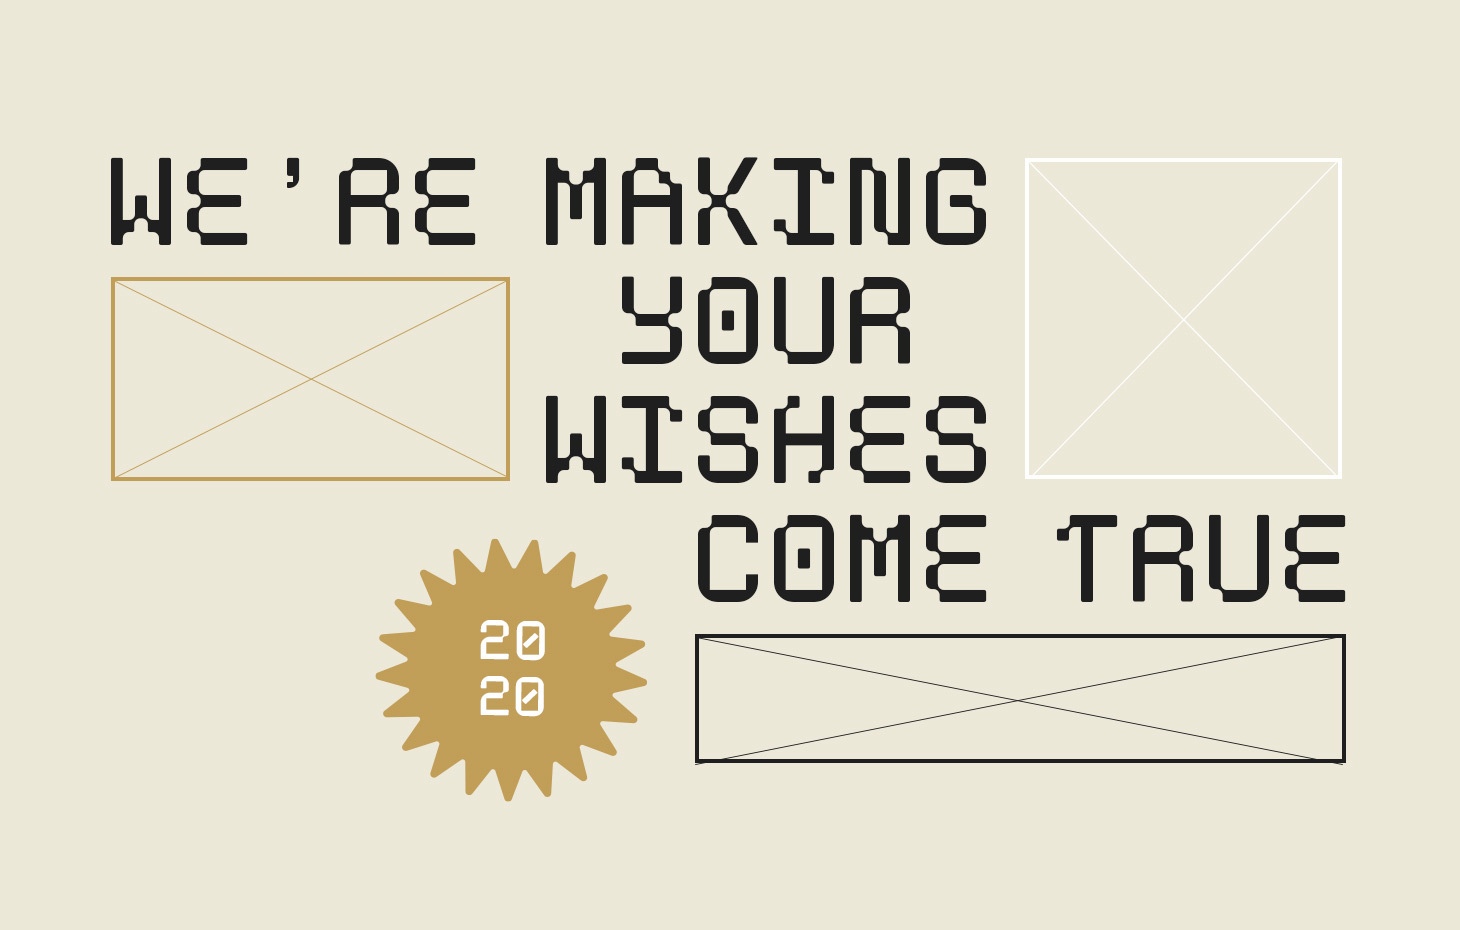 we're making your wishes come true